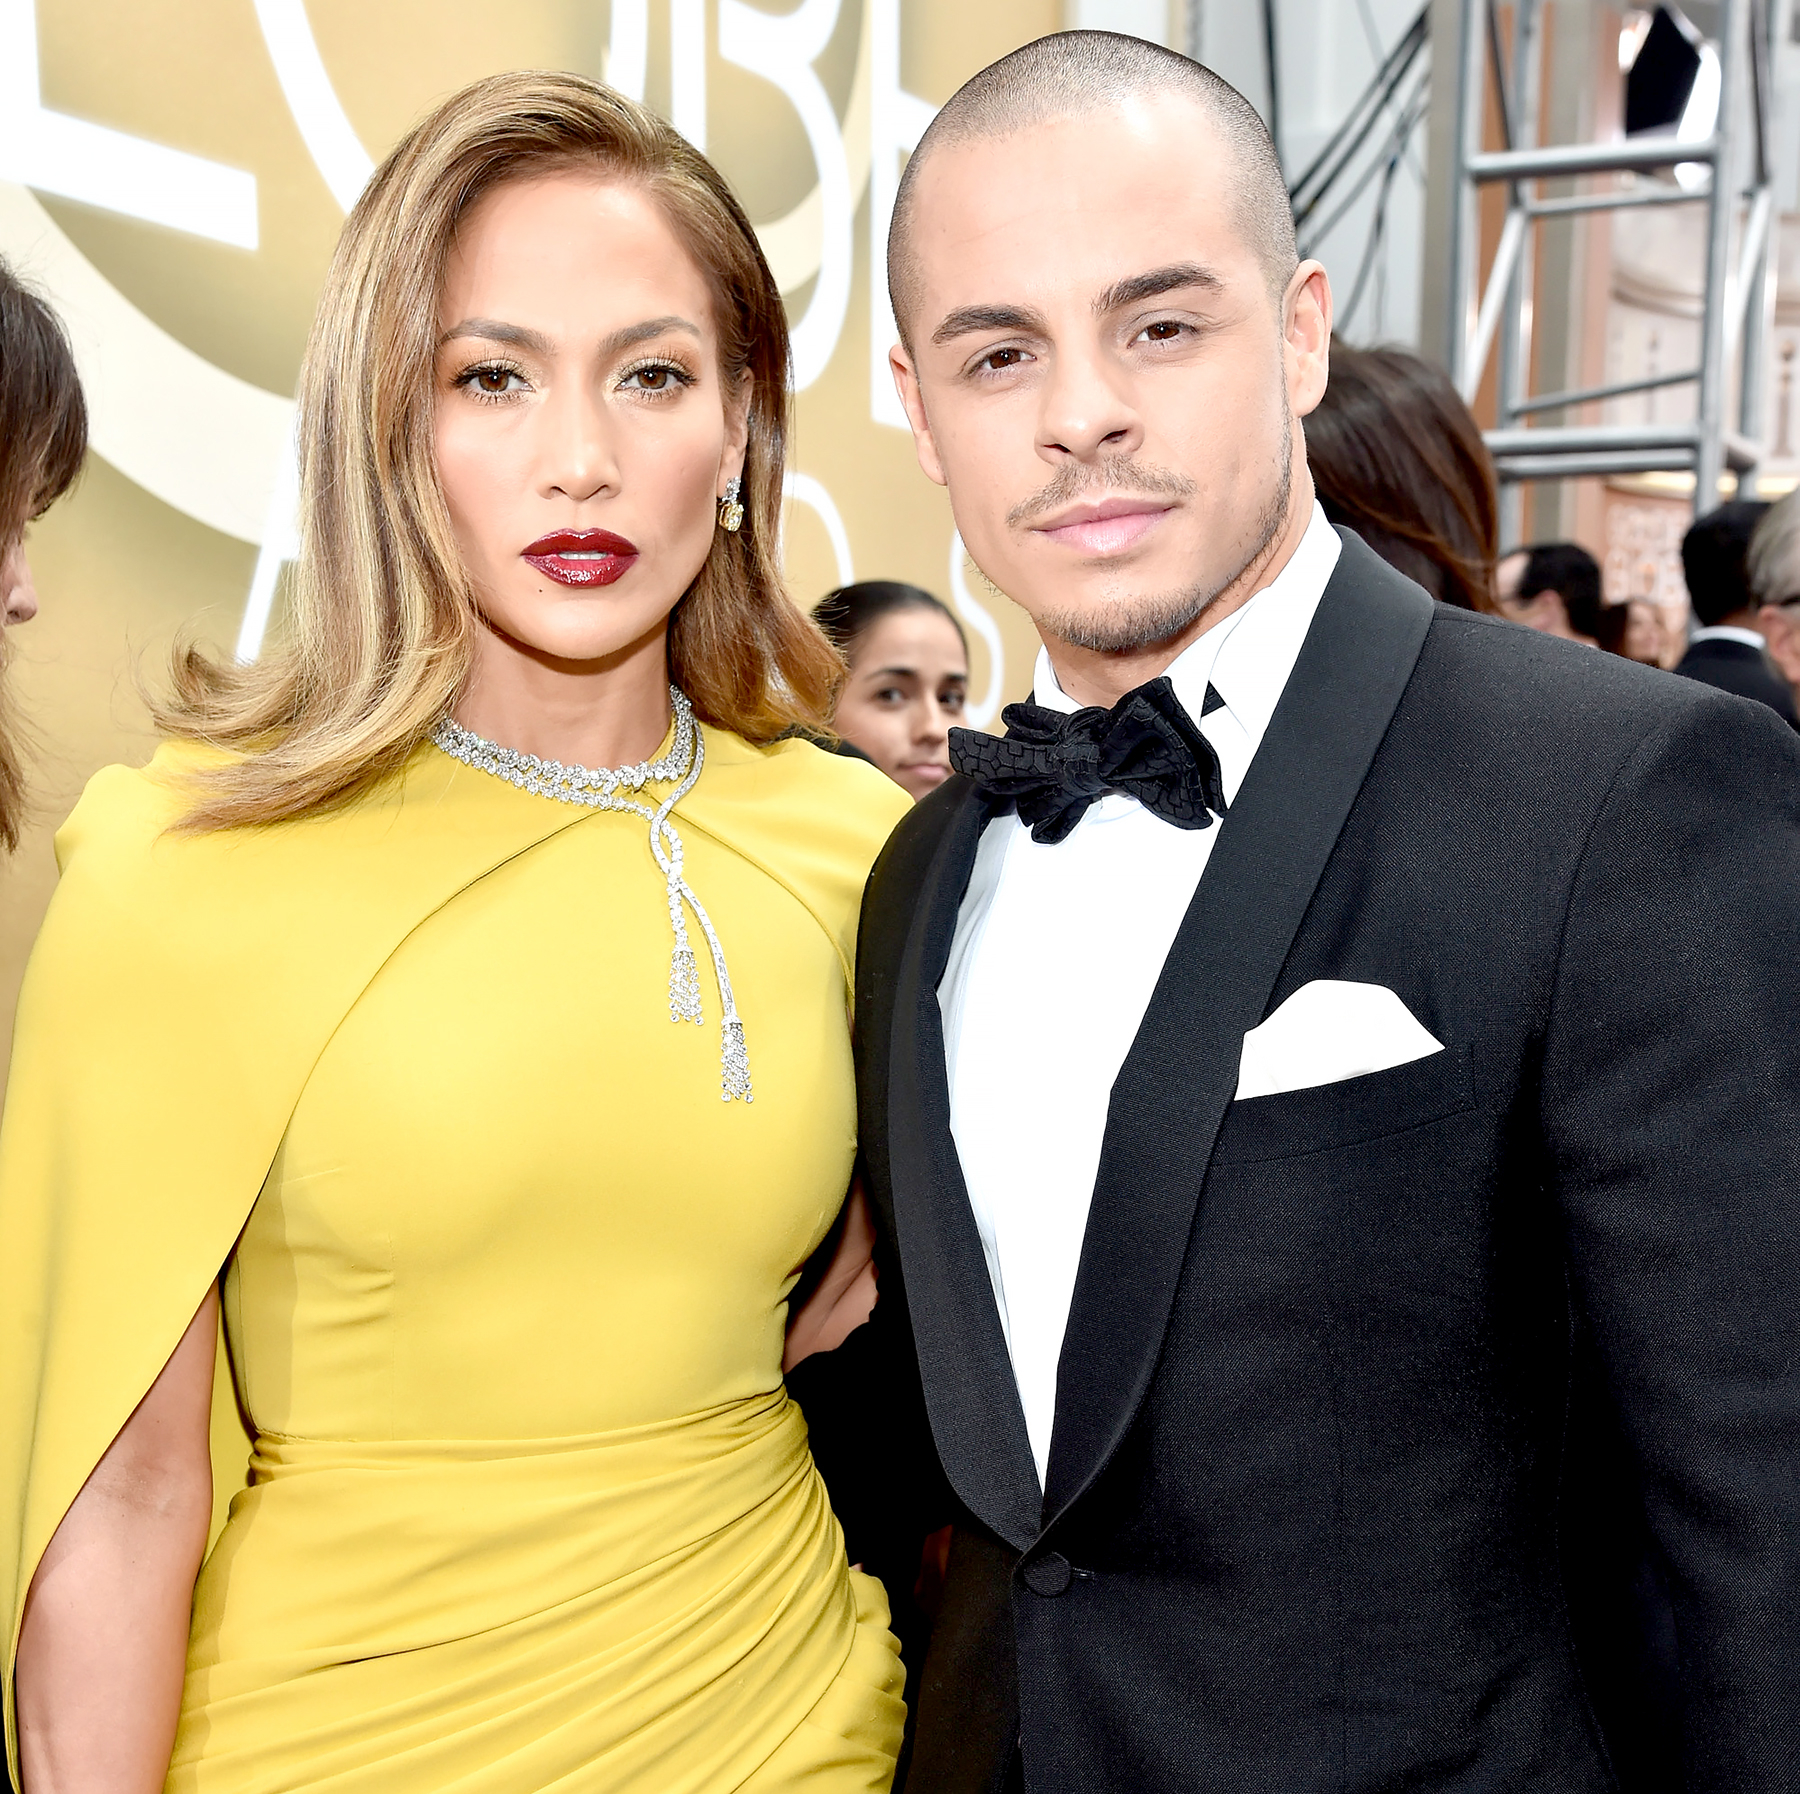 Jennifer Lopez and Casper Smart arrive to the 73rd Annual Golden Globe Awards.